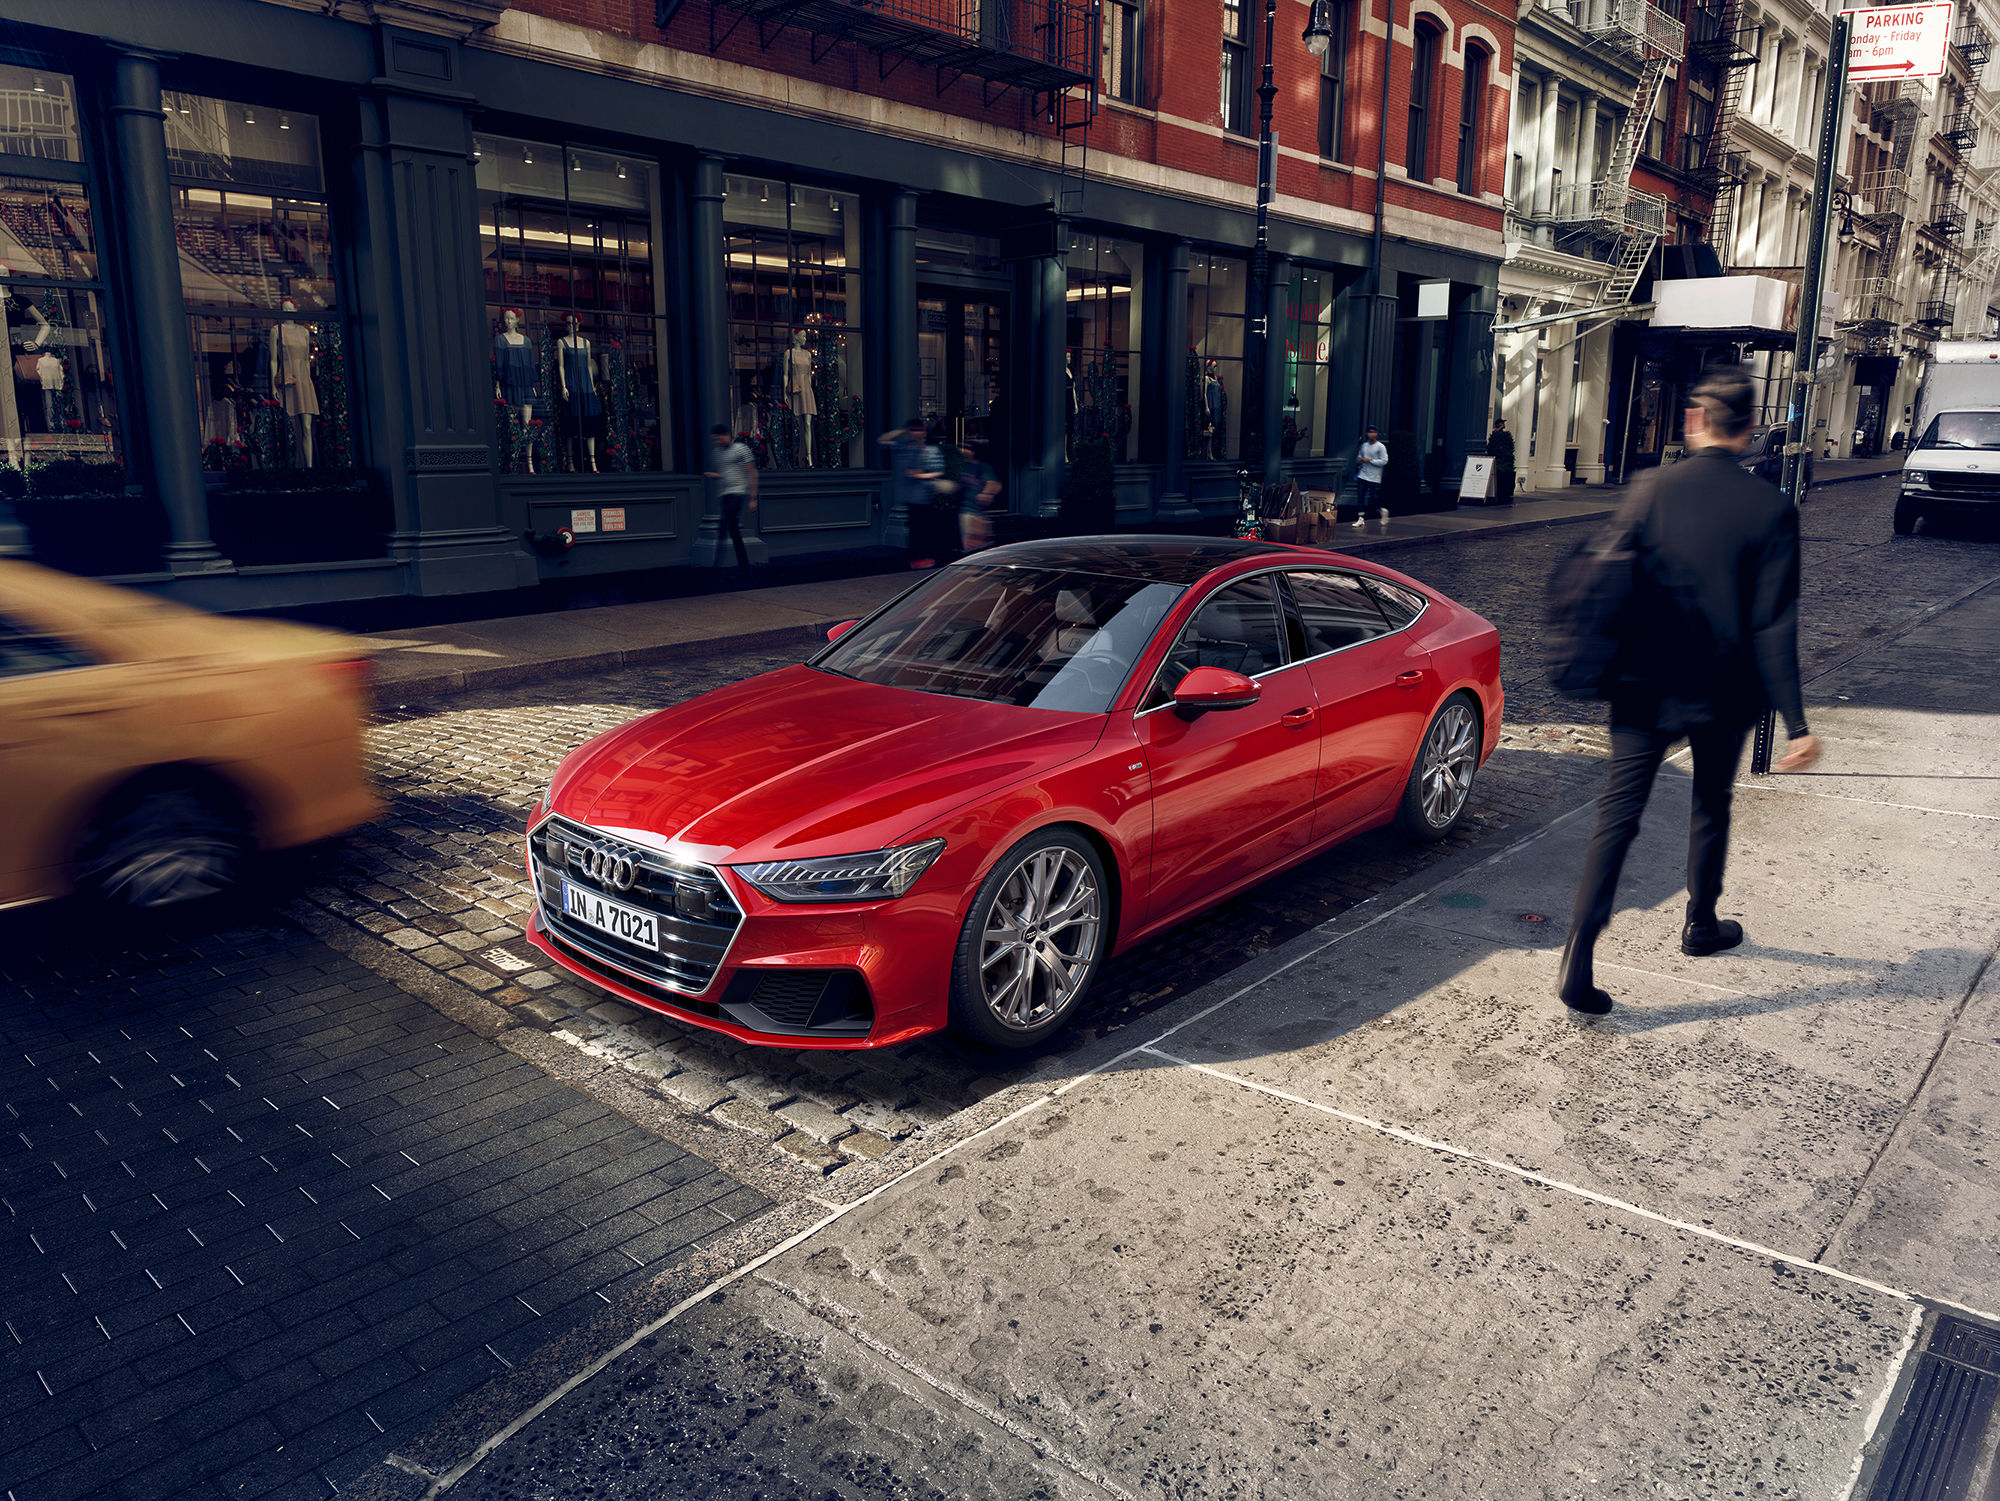 FRITHJOF OHM & PRETZSCH / All-New AUDI A7 Campaign + Catalogue Artwork